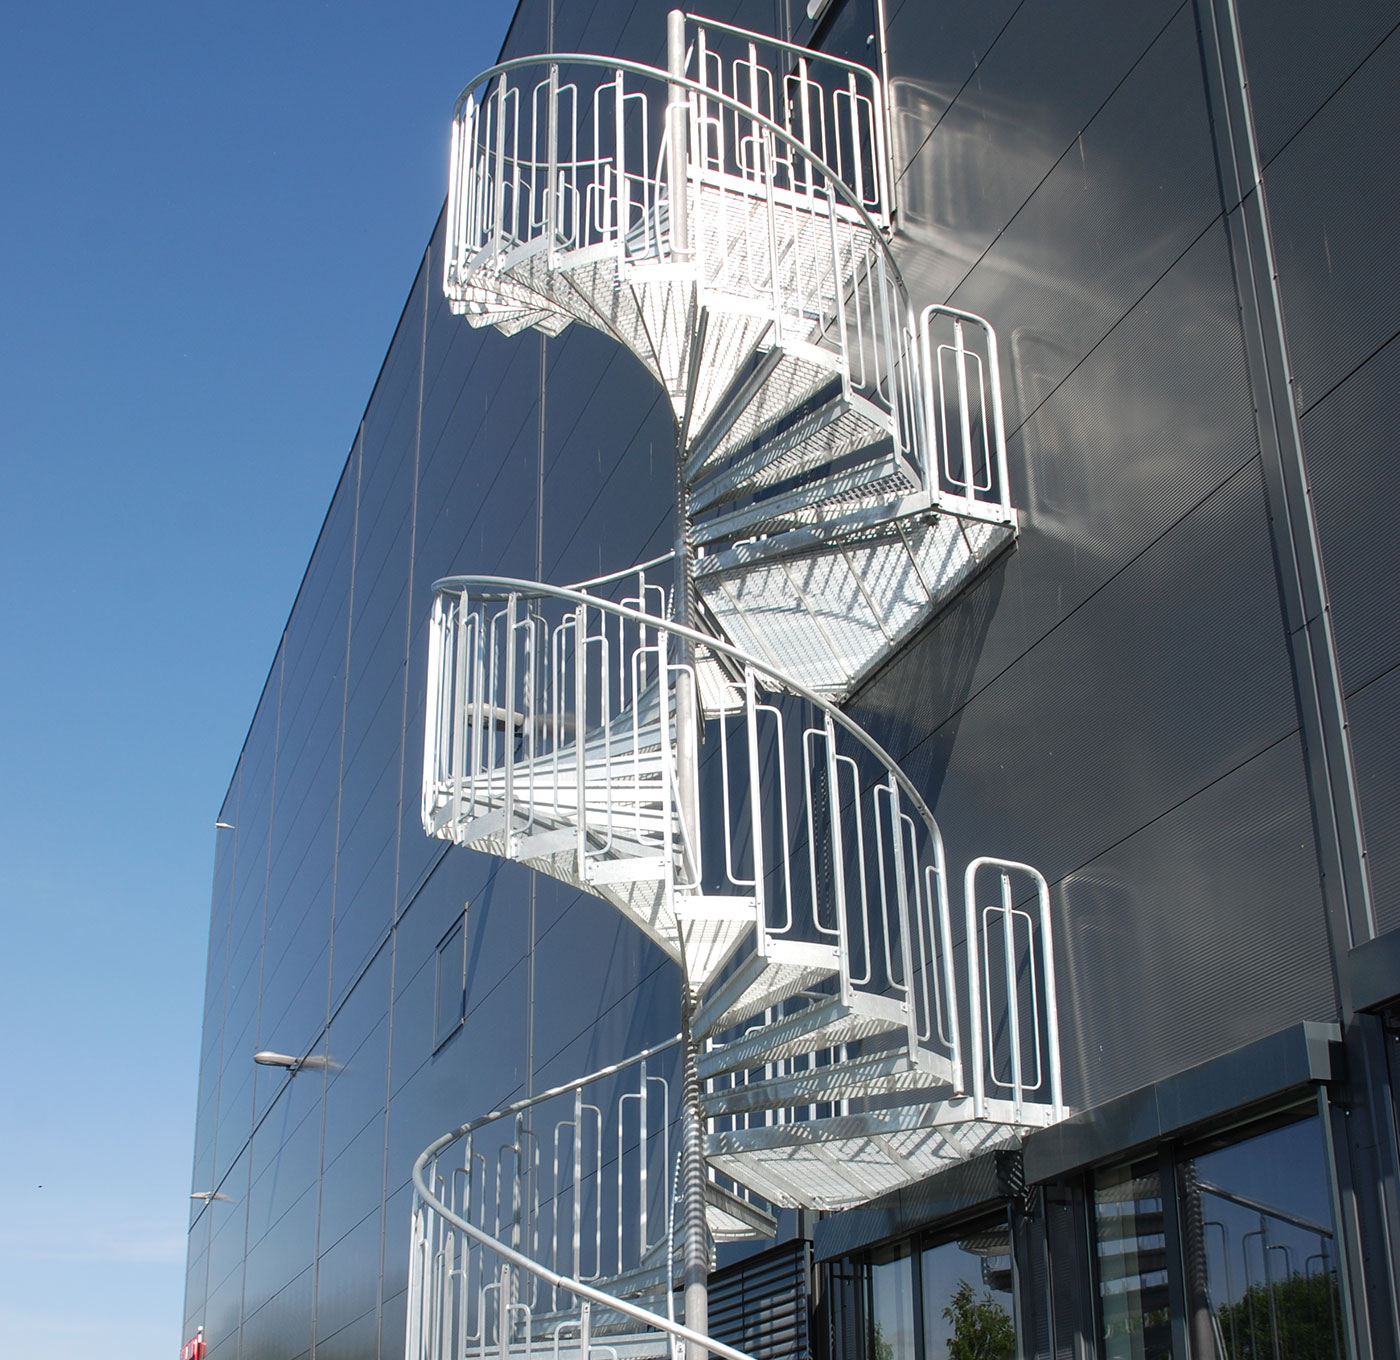 Childsafe spiral staircase outdoors for emergency exit